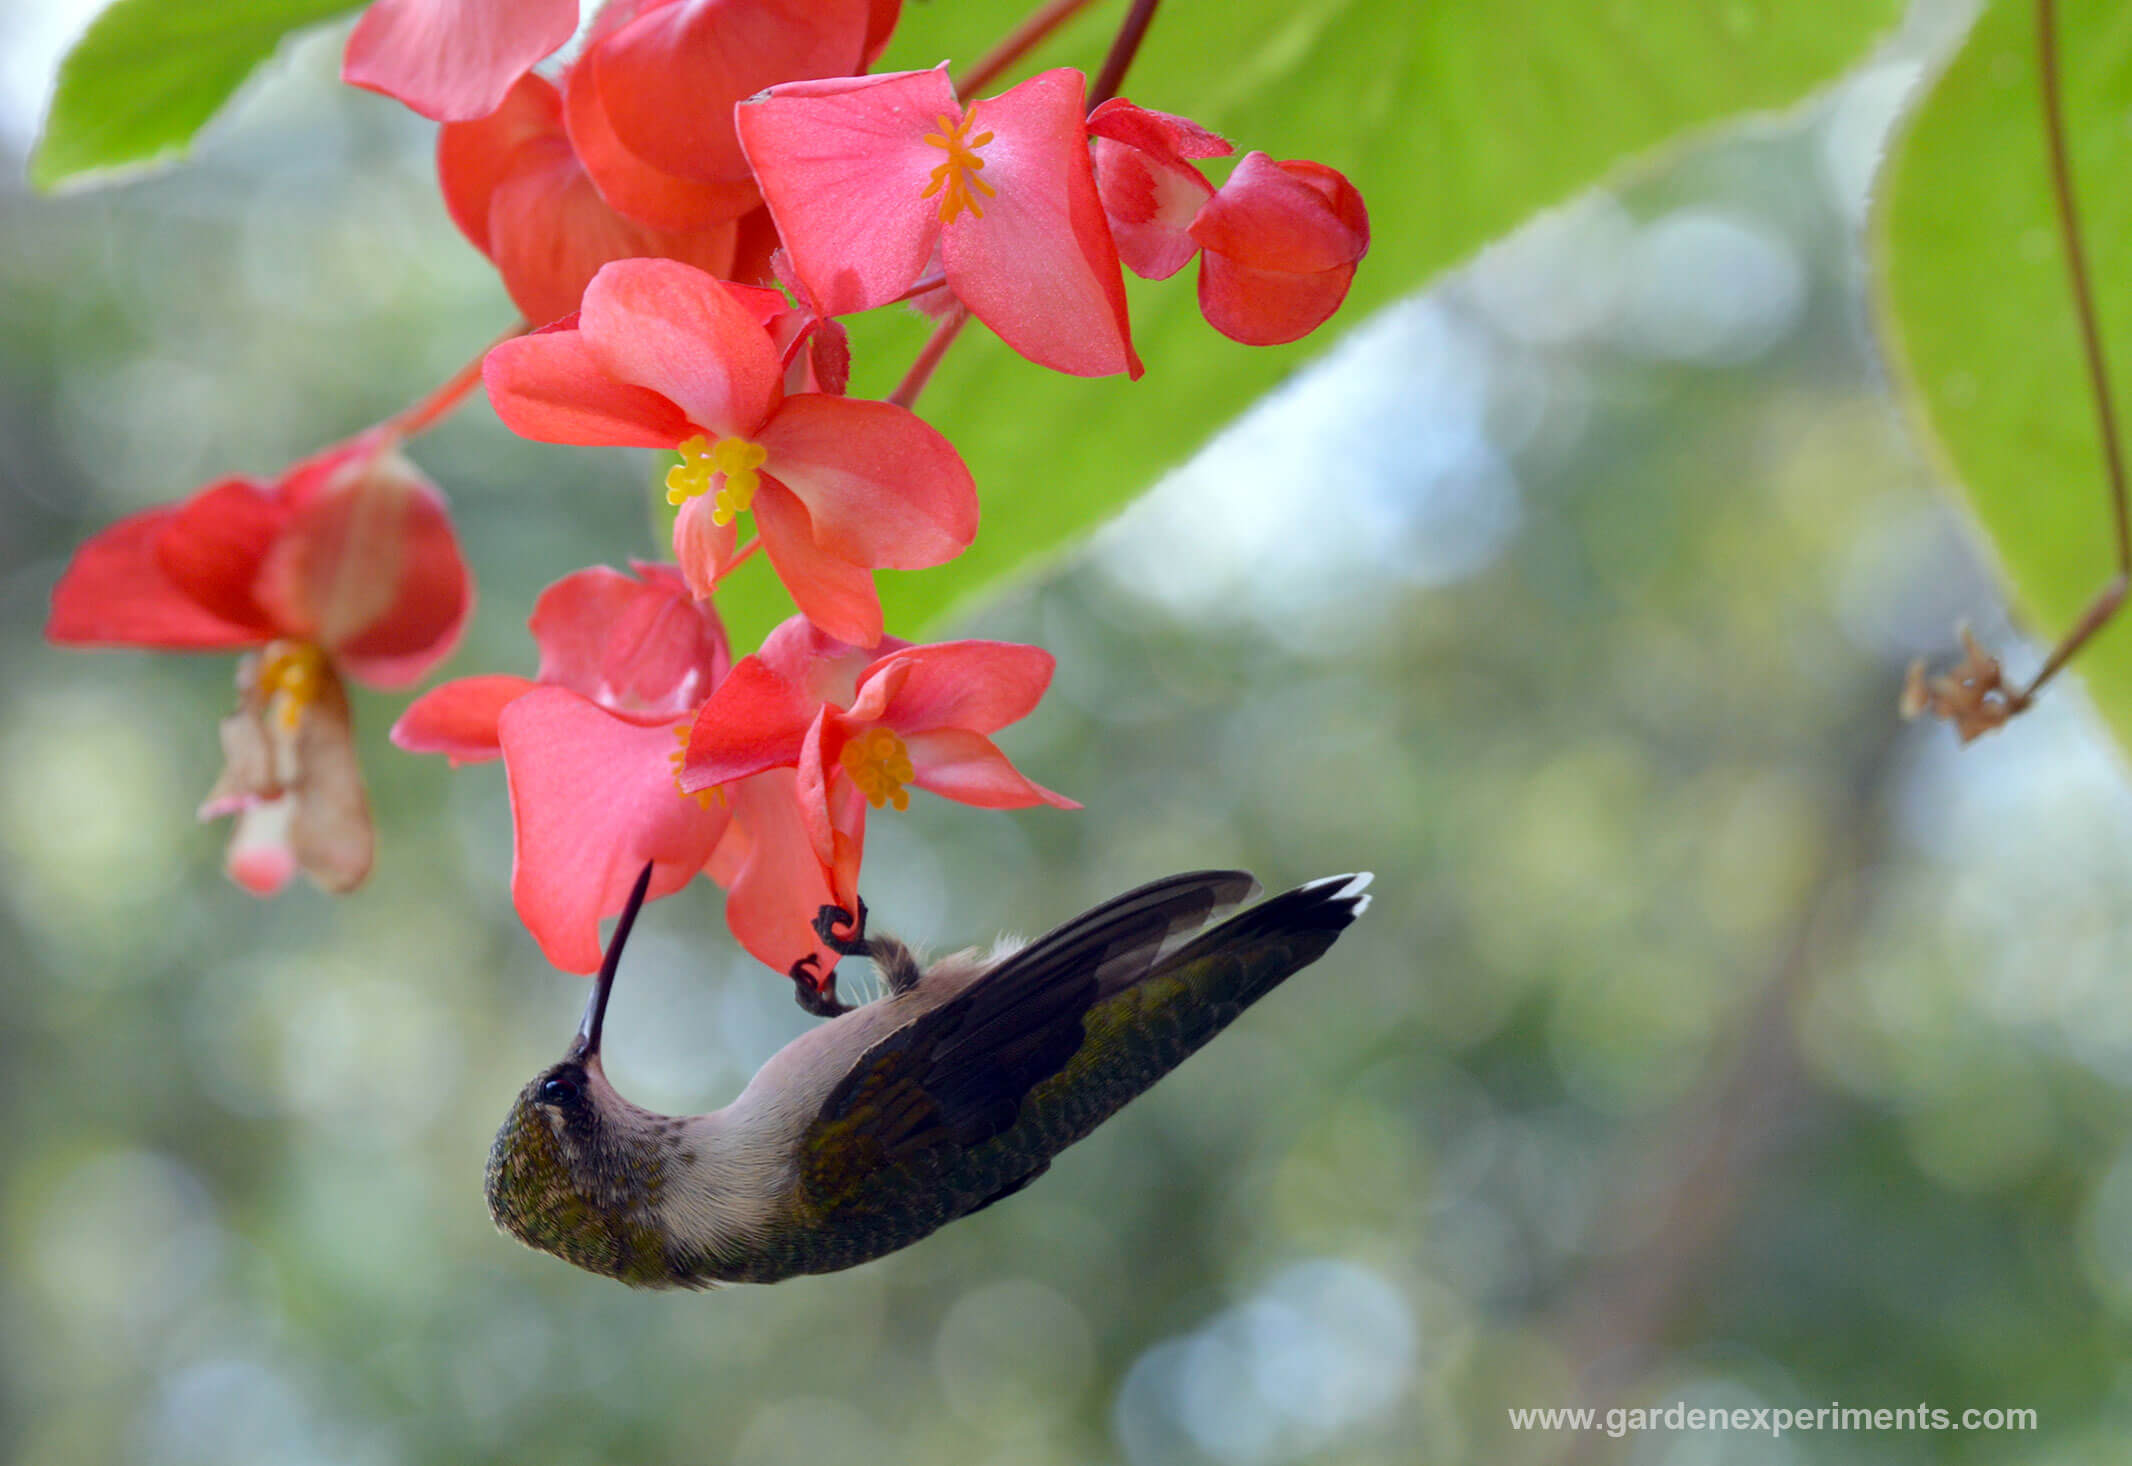 Begonia Attracts Hummingbirds | Amazing Flowers That Attract Hummingbirds To Keep In Your Homestead